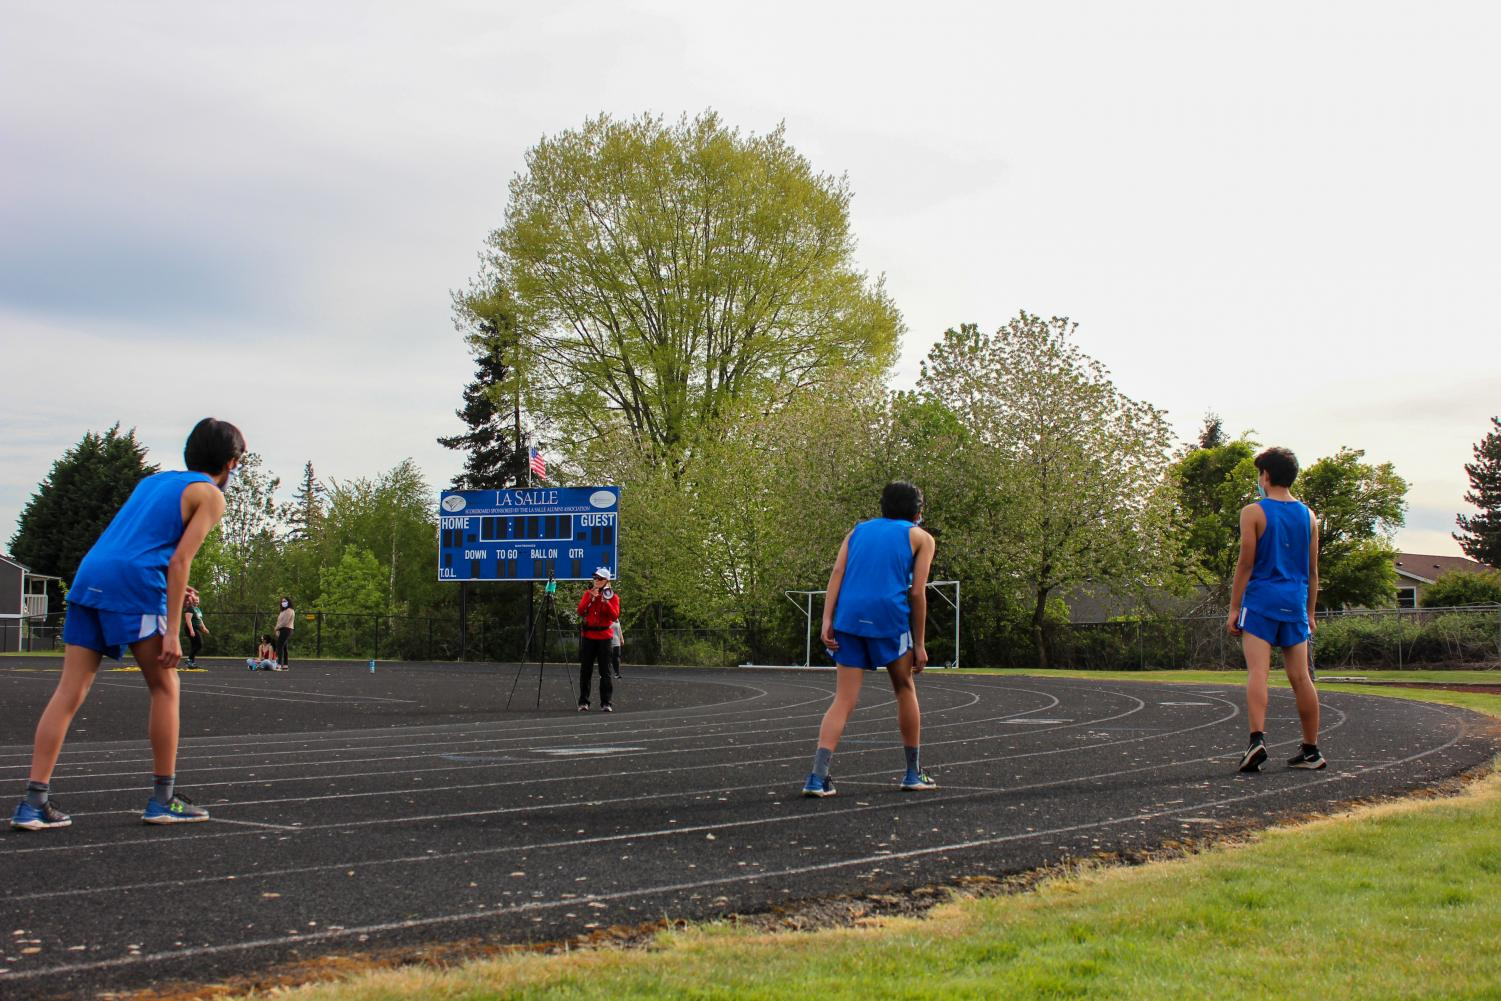 Runners%2C+Take+Your+Mark%3A+Track+and+Field+Athletes+Return+After+Missing+Out+on+Last+Year%E2%80%99s+Season